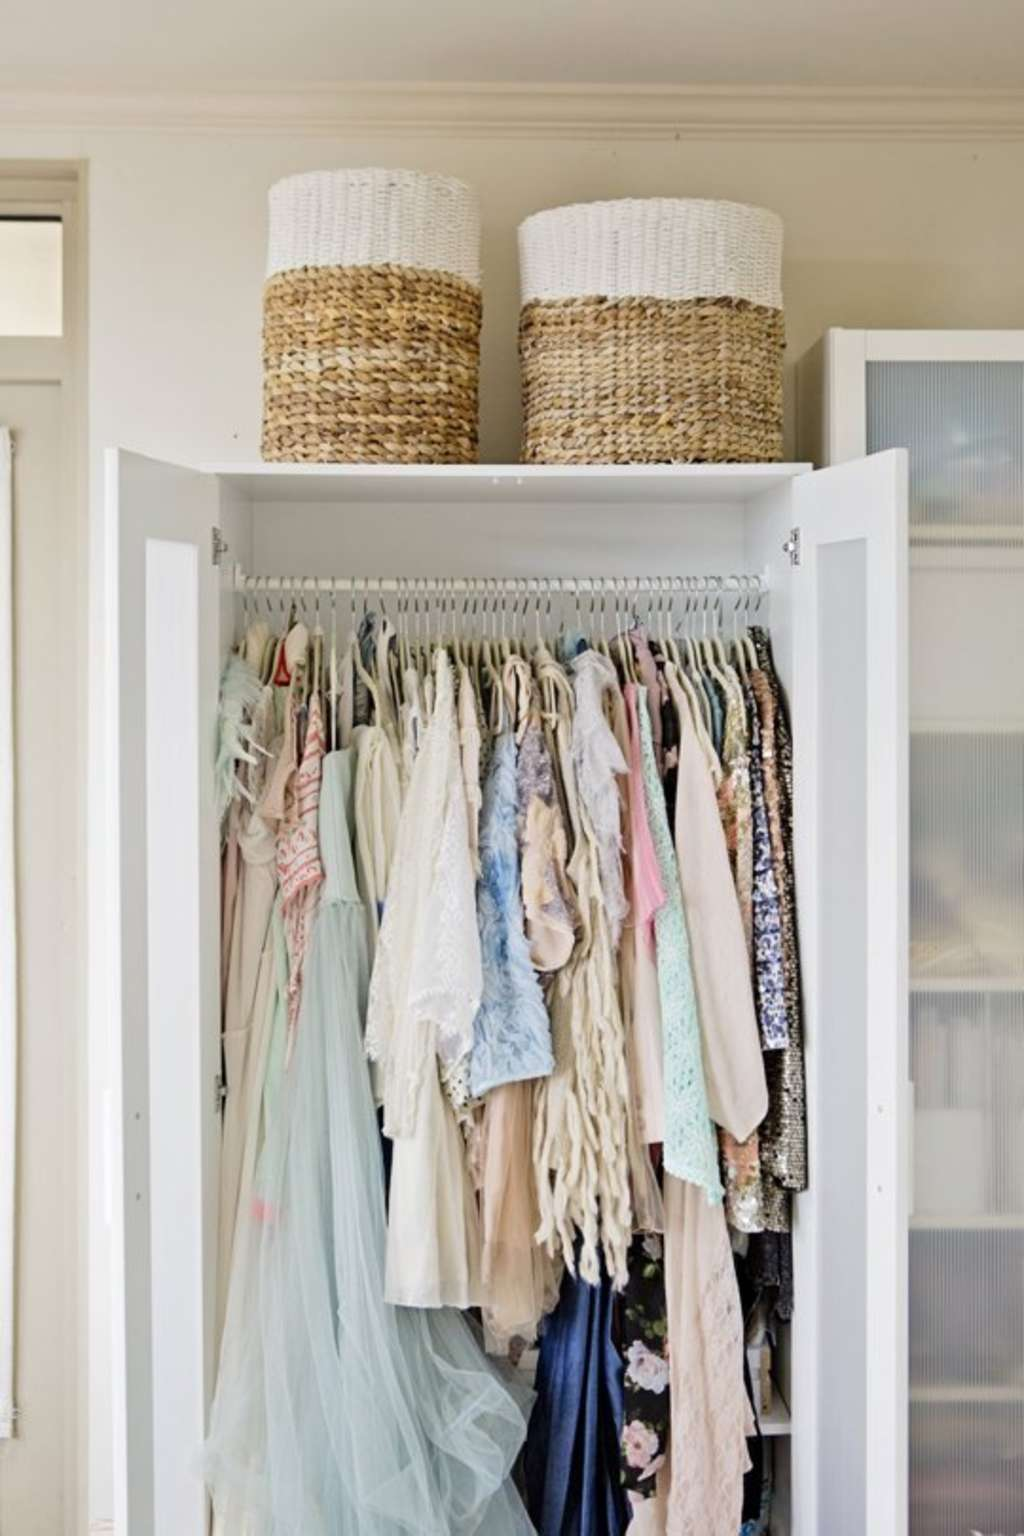 How To Organize Your Closet So You Actually See What You Own